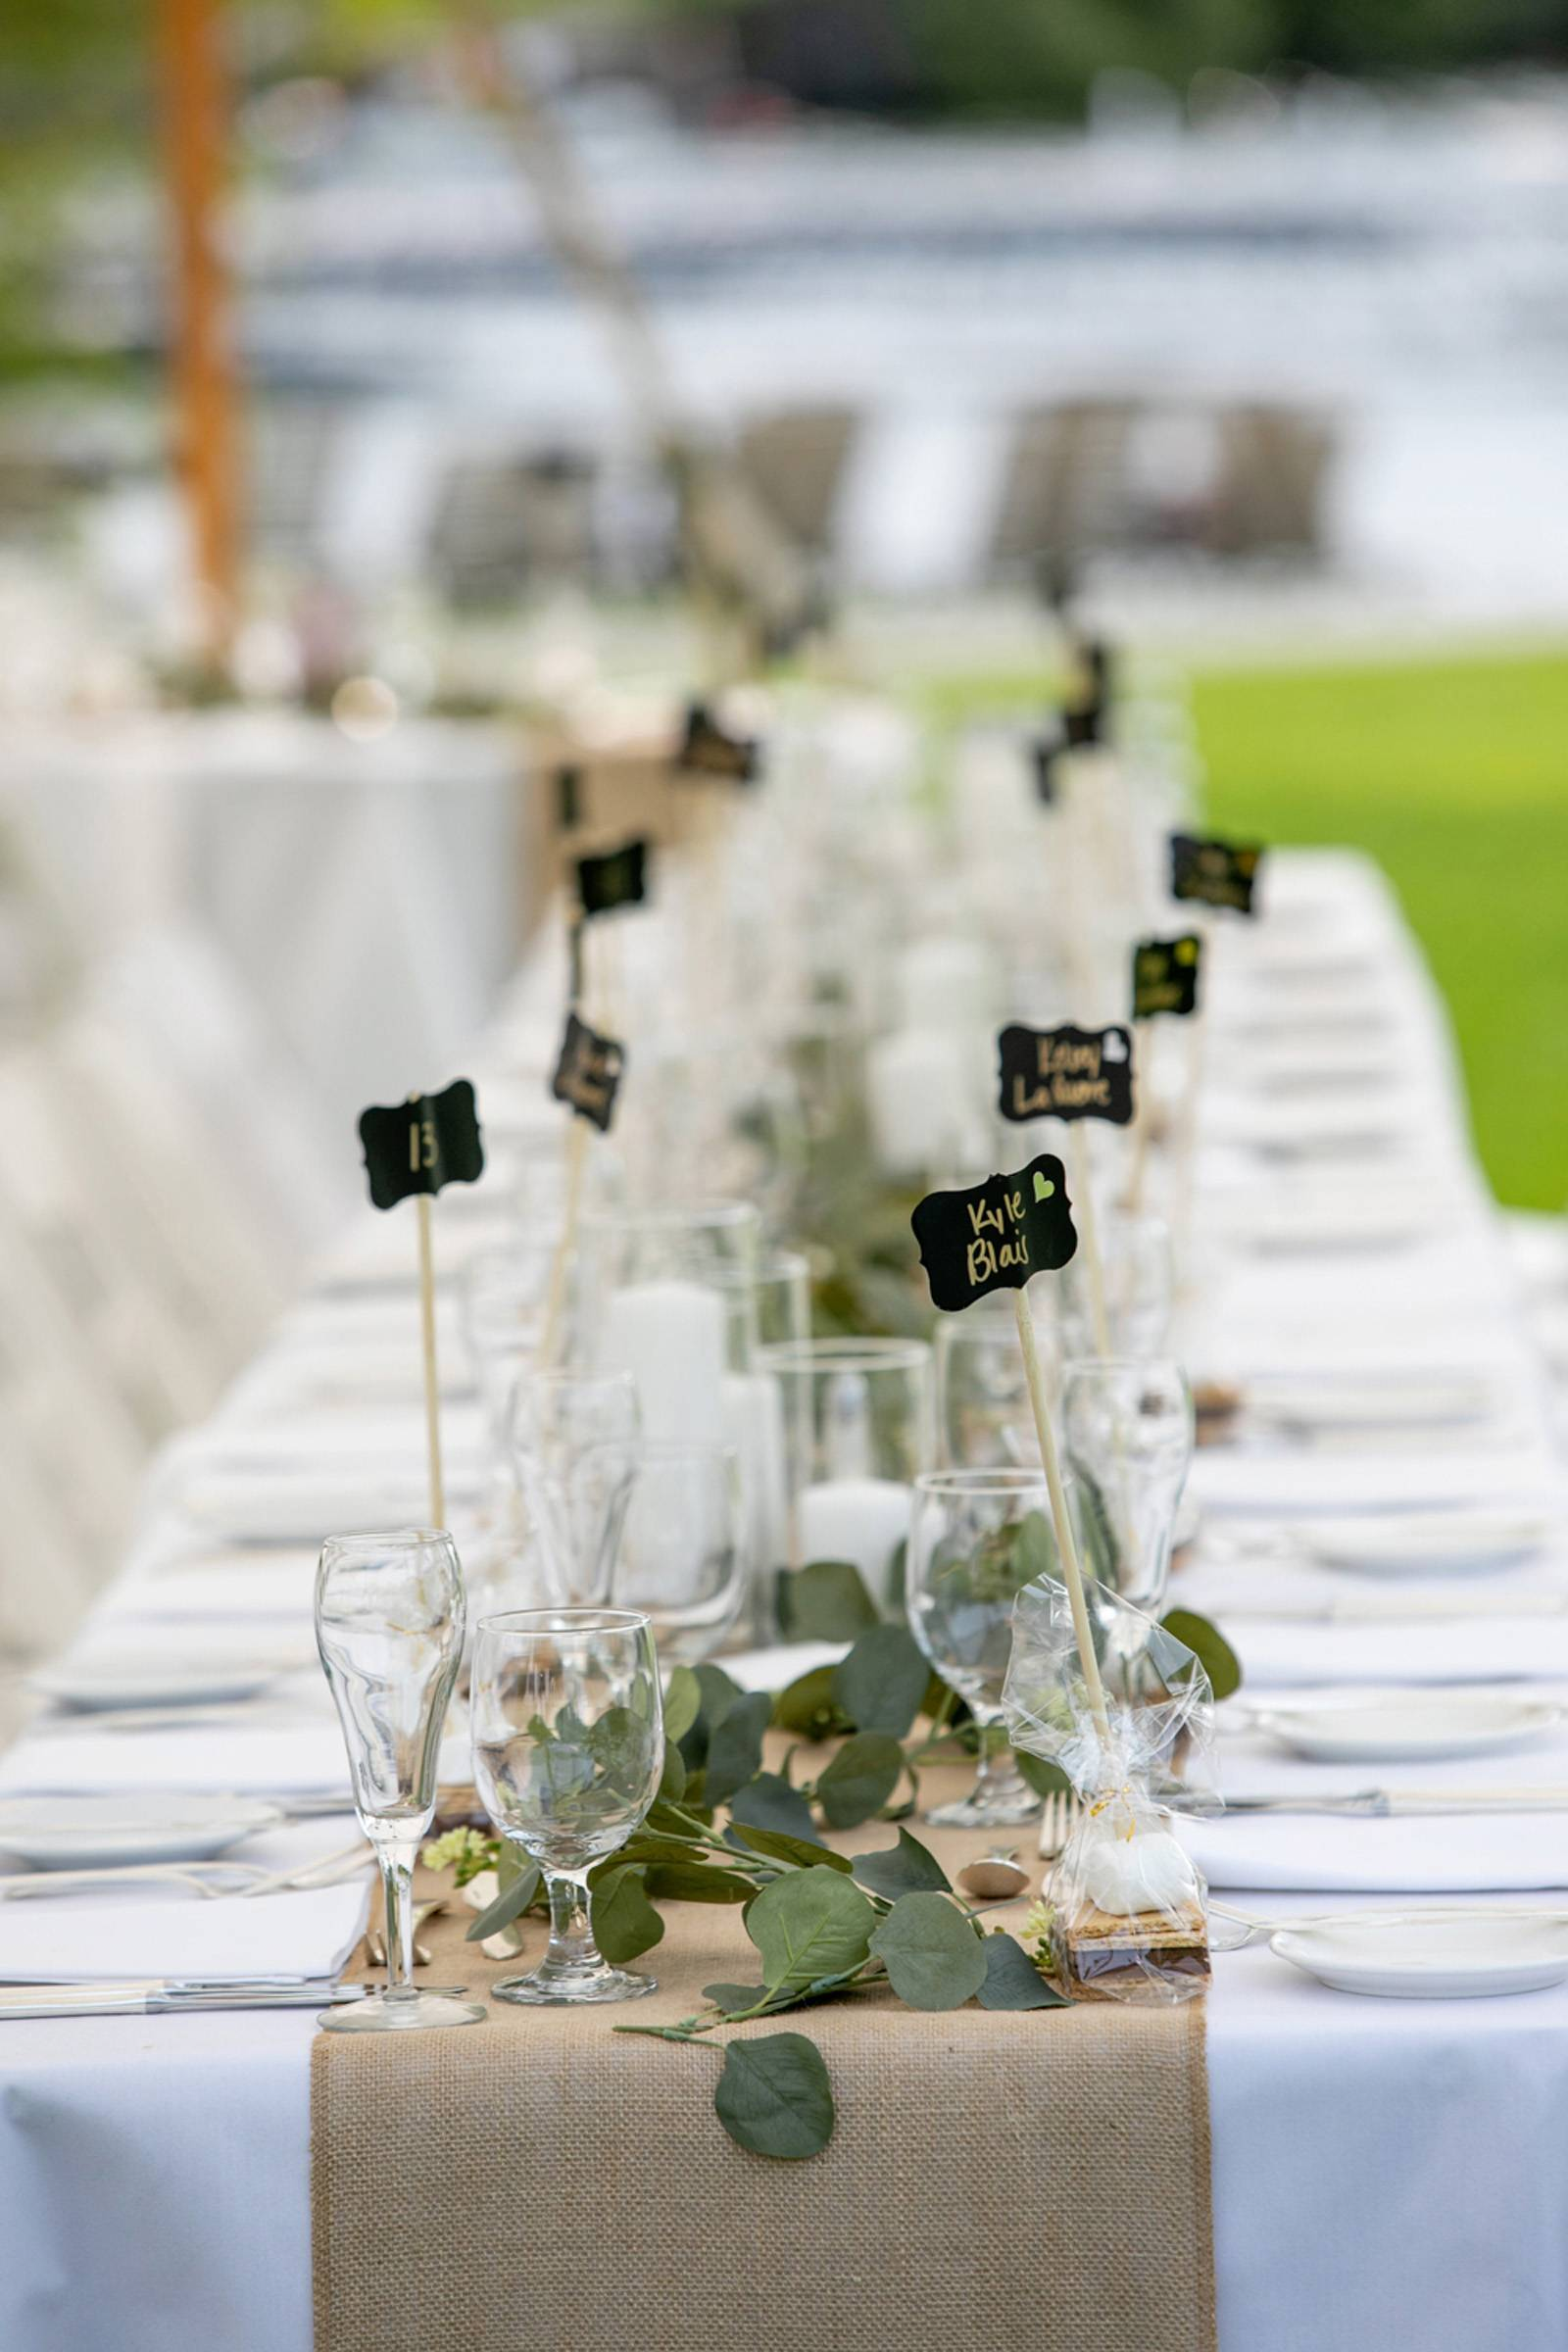 Burlap table runner and eucalyptus greenery on long tables